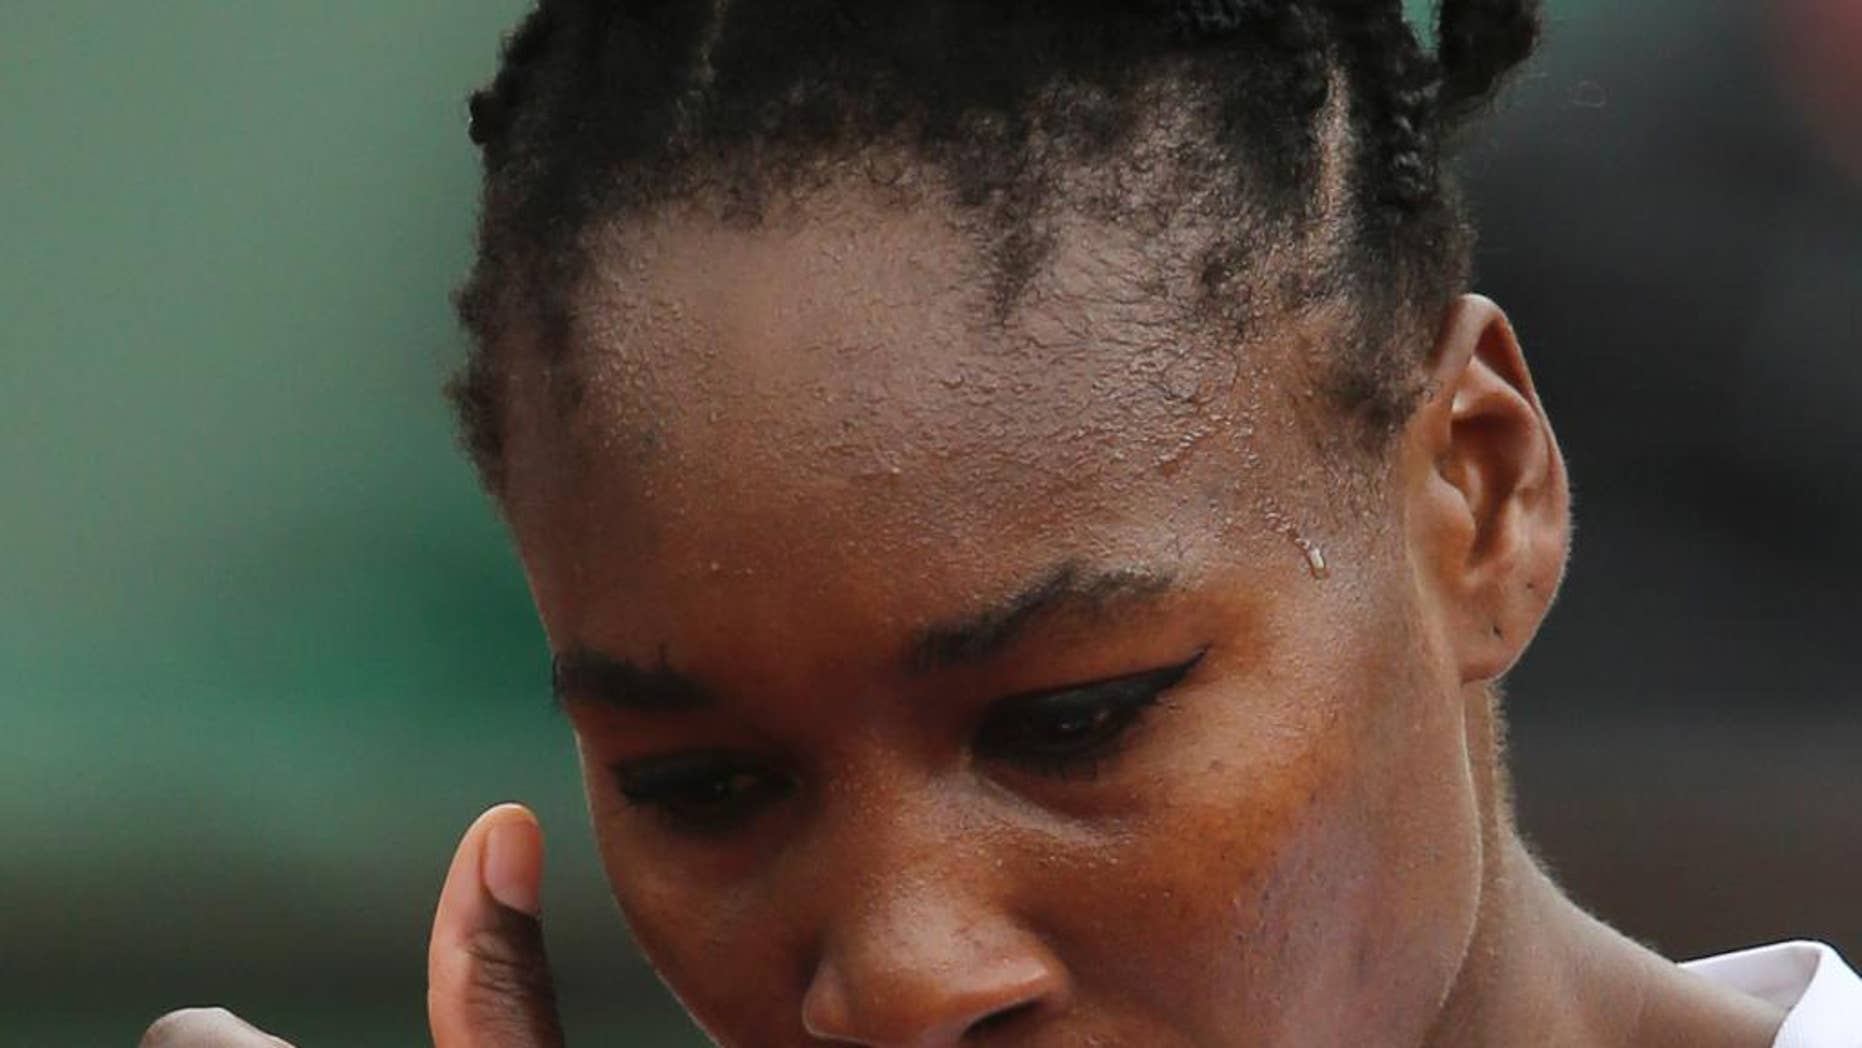 Venus Williams of the U.S. wipes away some beads of sweat during the second round match of the French Open tennis tournament against Slovakia's Anna Schmiedlova at the Roland Garros stadium, in Paris, France, Wednesday, May 28, 2014. (AP Photo/David Vincent)